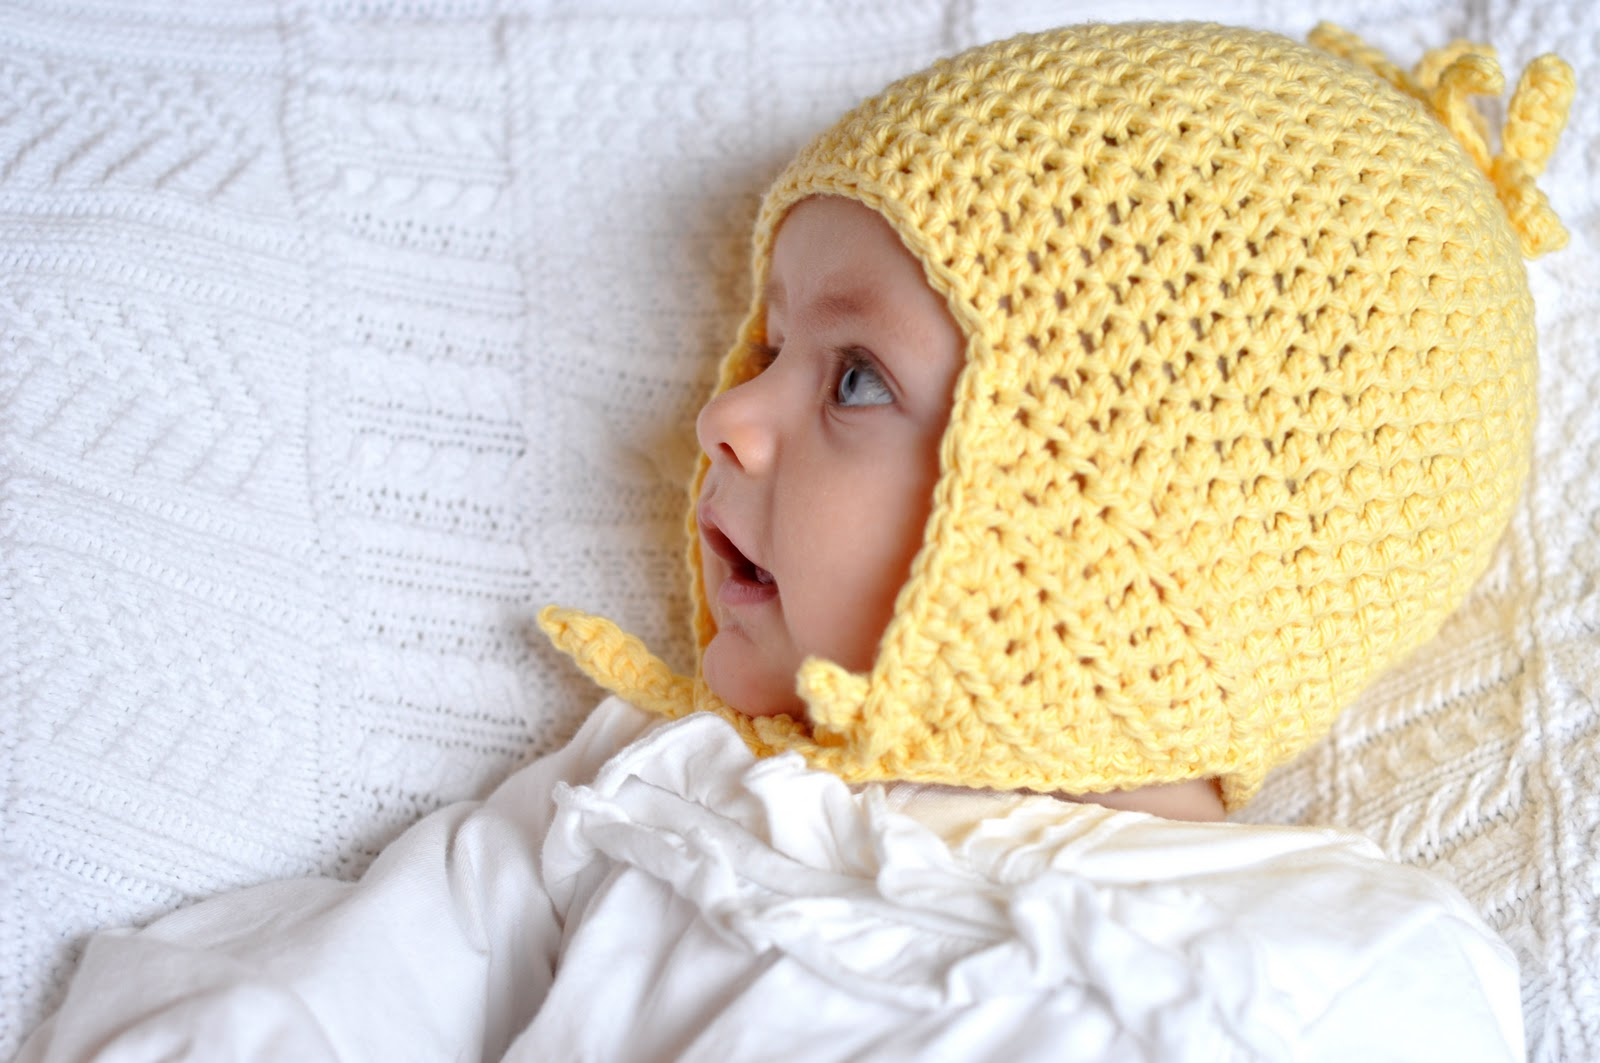 Free Crochet Pattern For Baby Floppy Hats : Aesthetic Nest: Crochet: Flippy Floppy Earflap Hat for ...